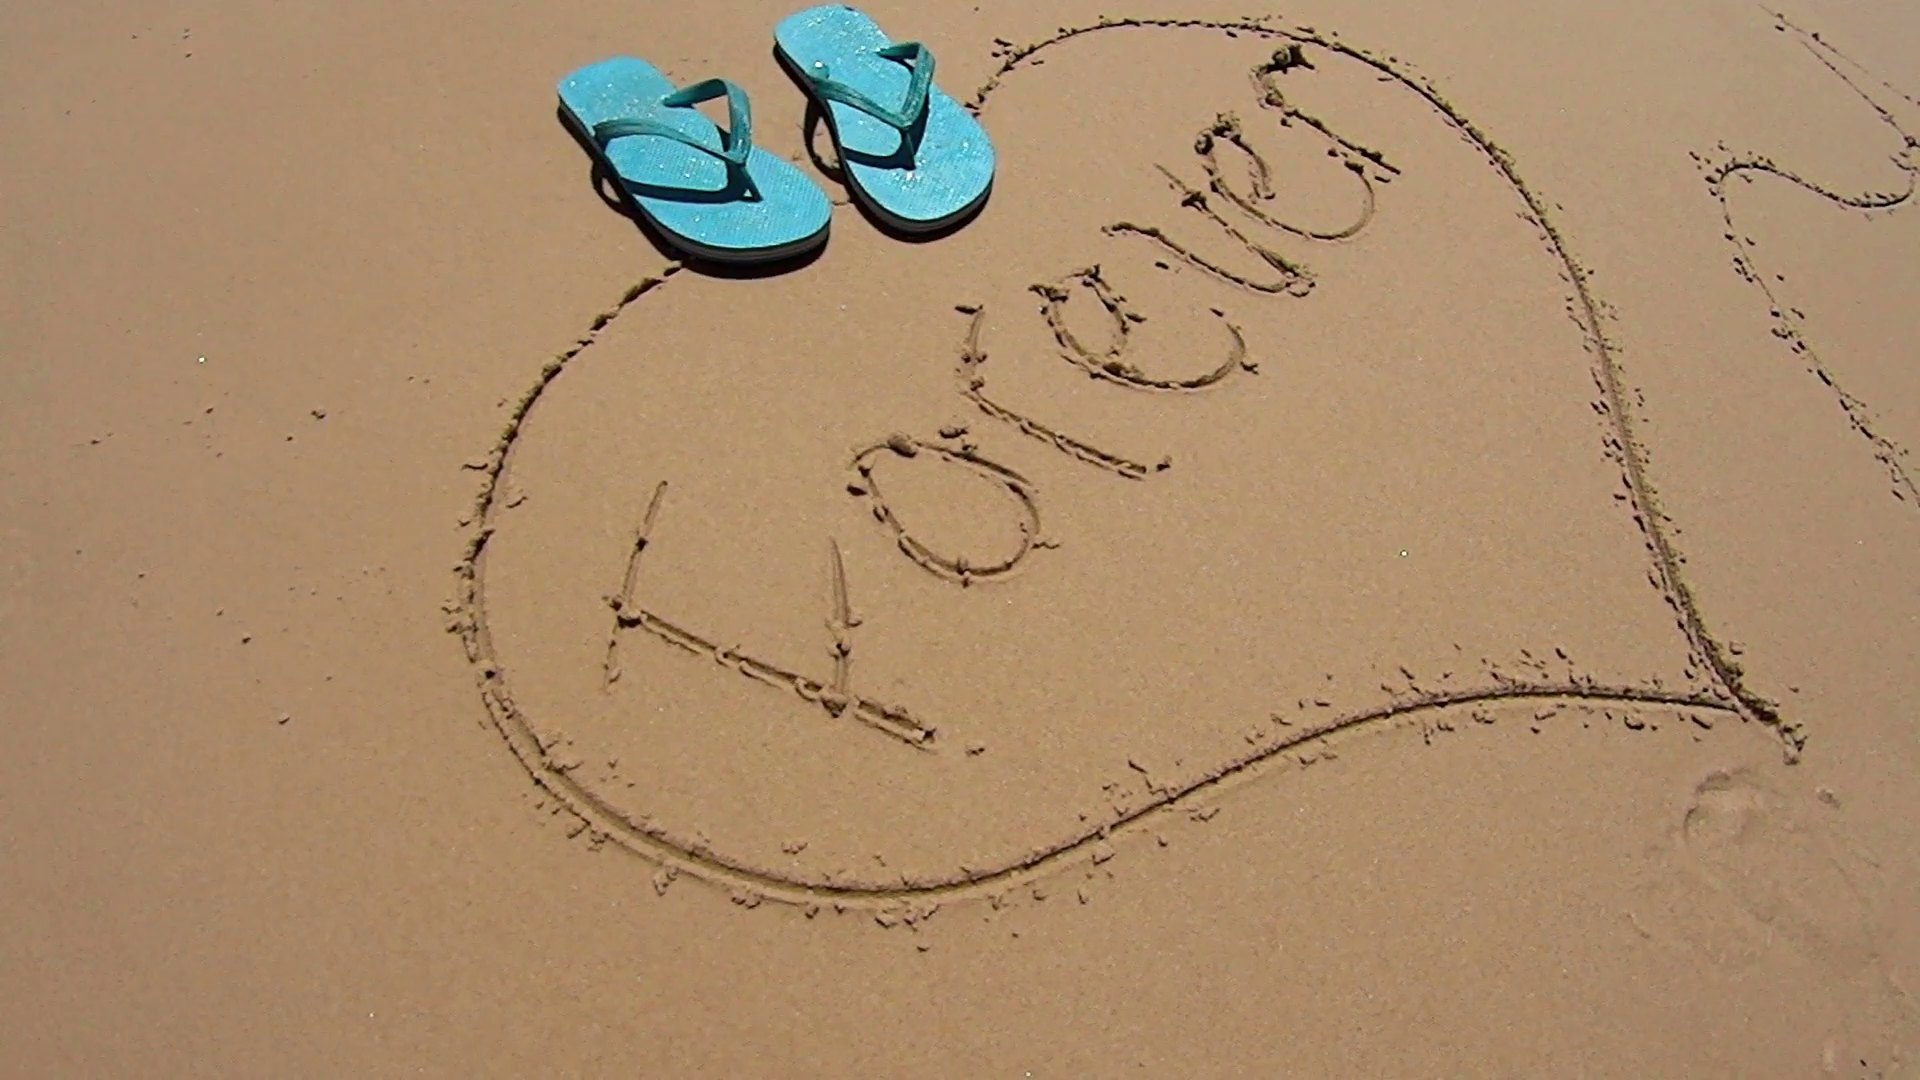 1920x1080 Pair Of Flip Flops Dropped On Love Heart Drawn In The Sand On